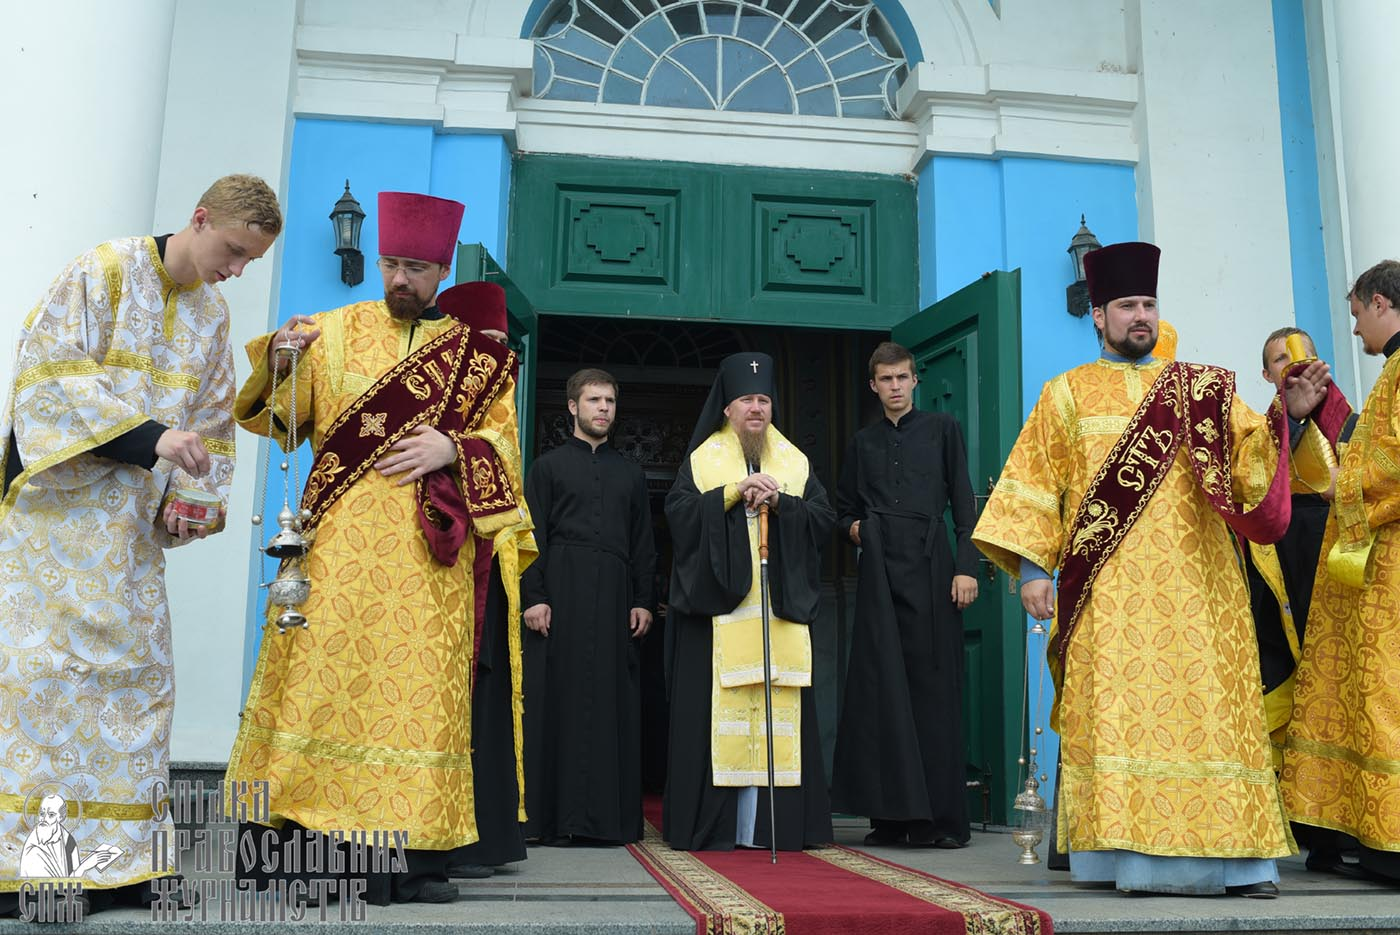 0349_0329_great-ukrainian-procession-with-the-prayer-for-peace-and-unity-of-ukraine